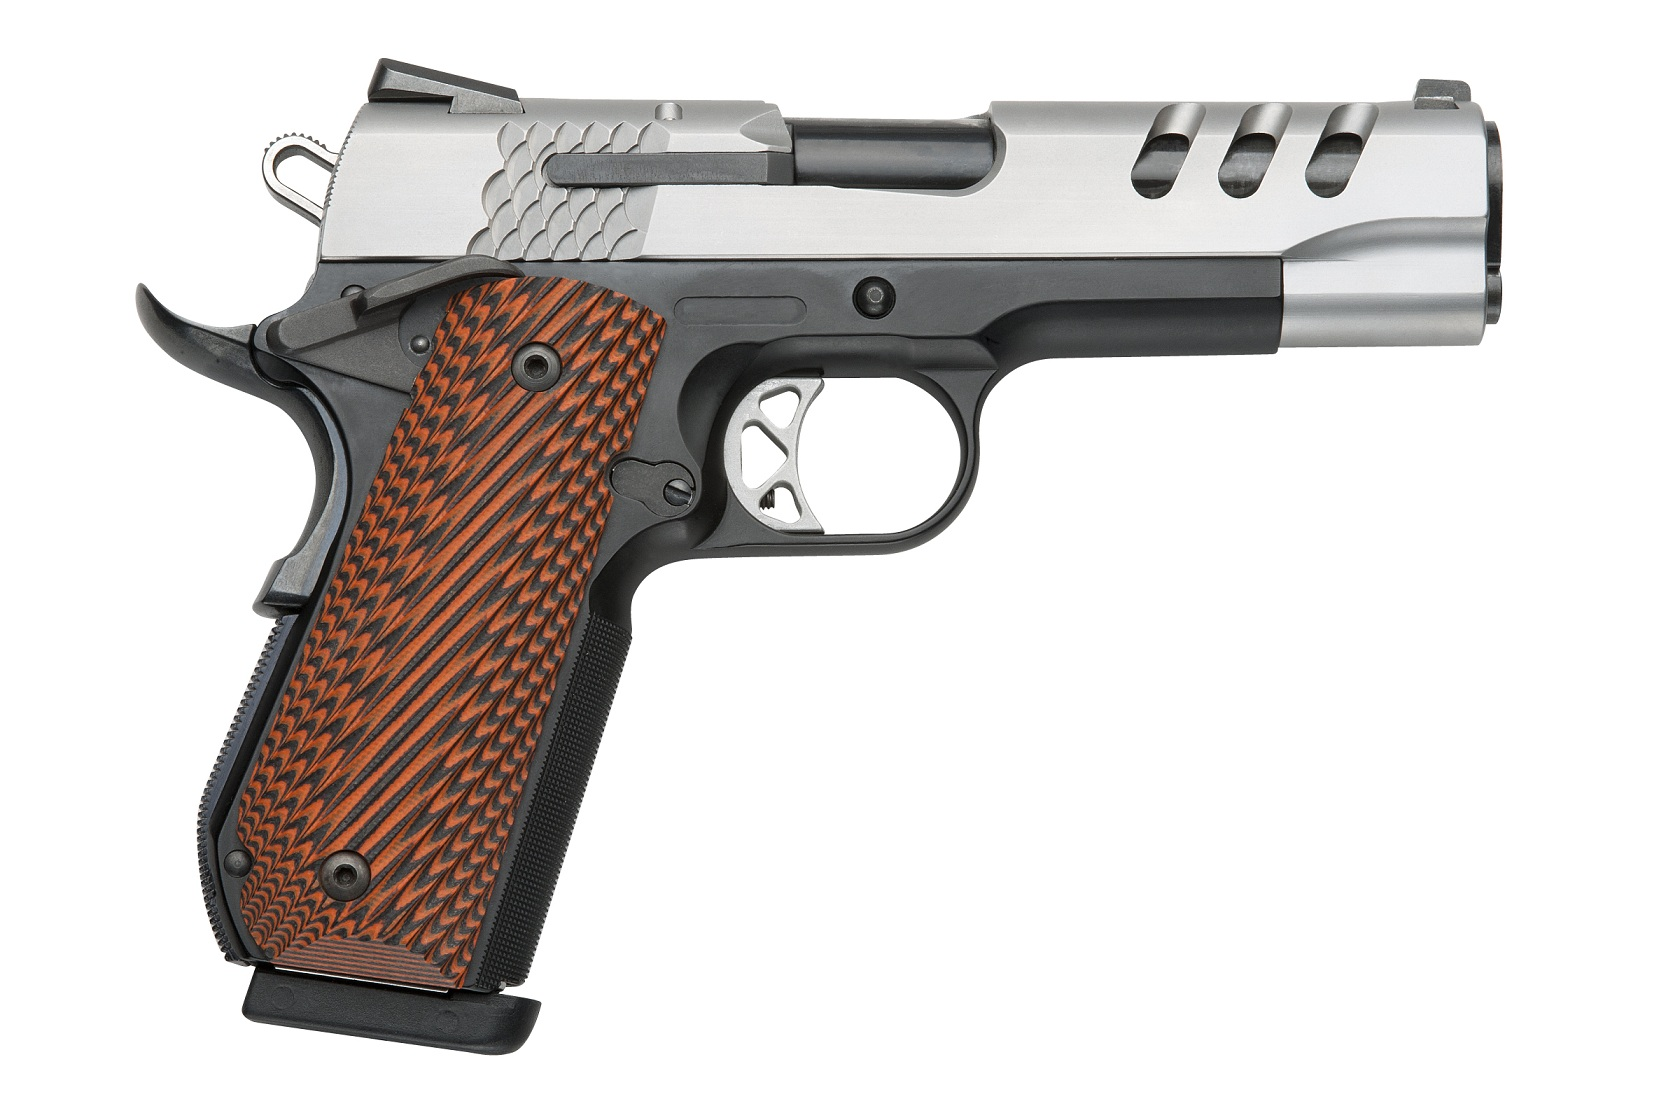 The Performance Center Round Butt SW1911 pistol, using a Commander-length Scandium frame